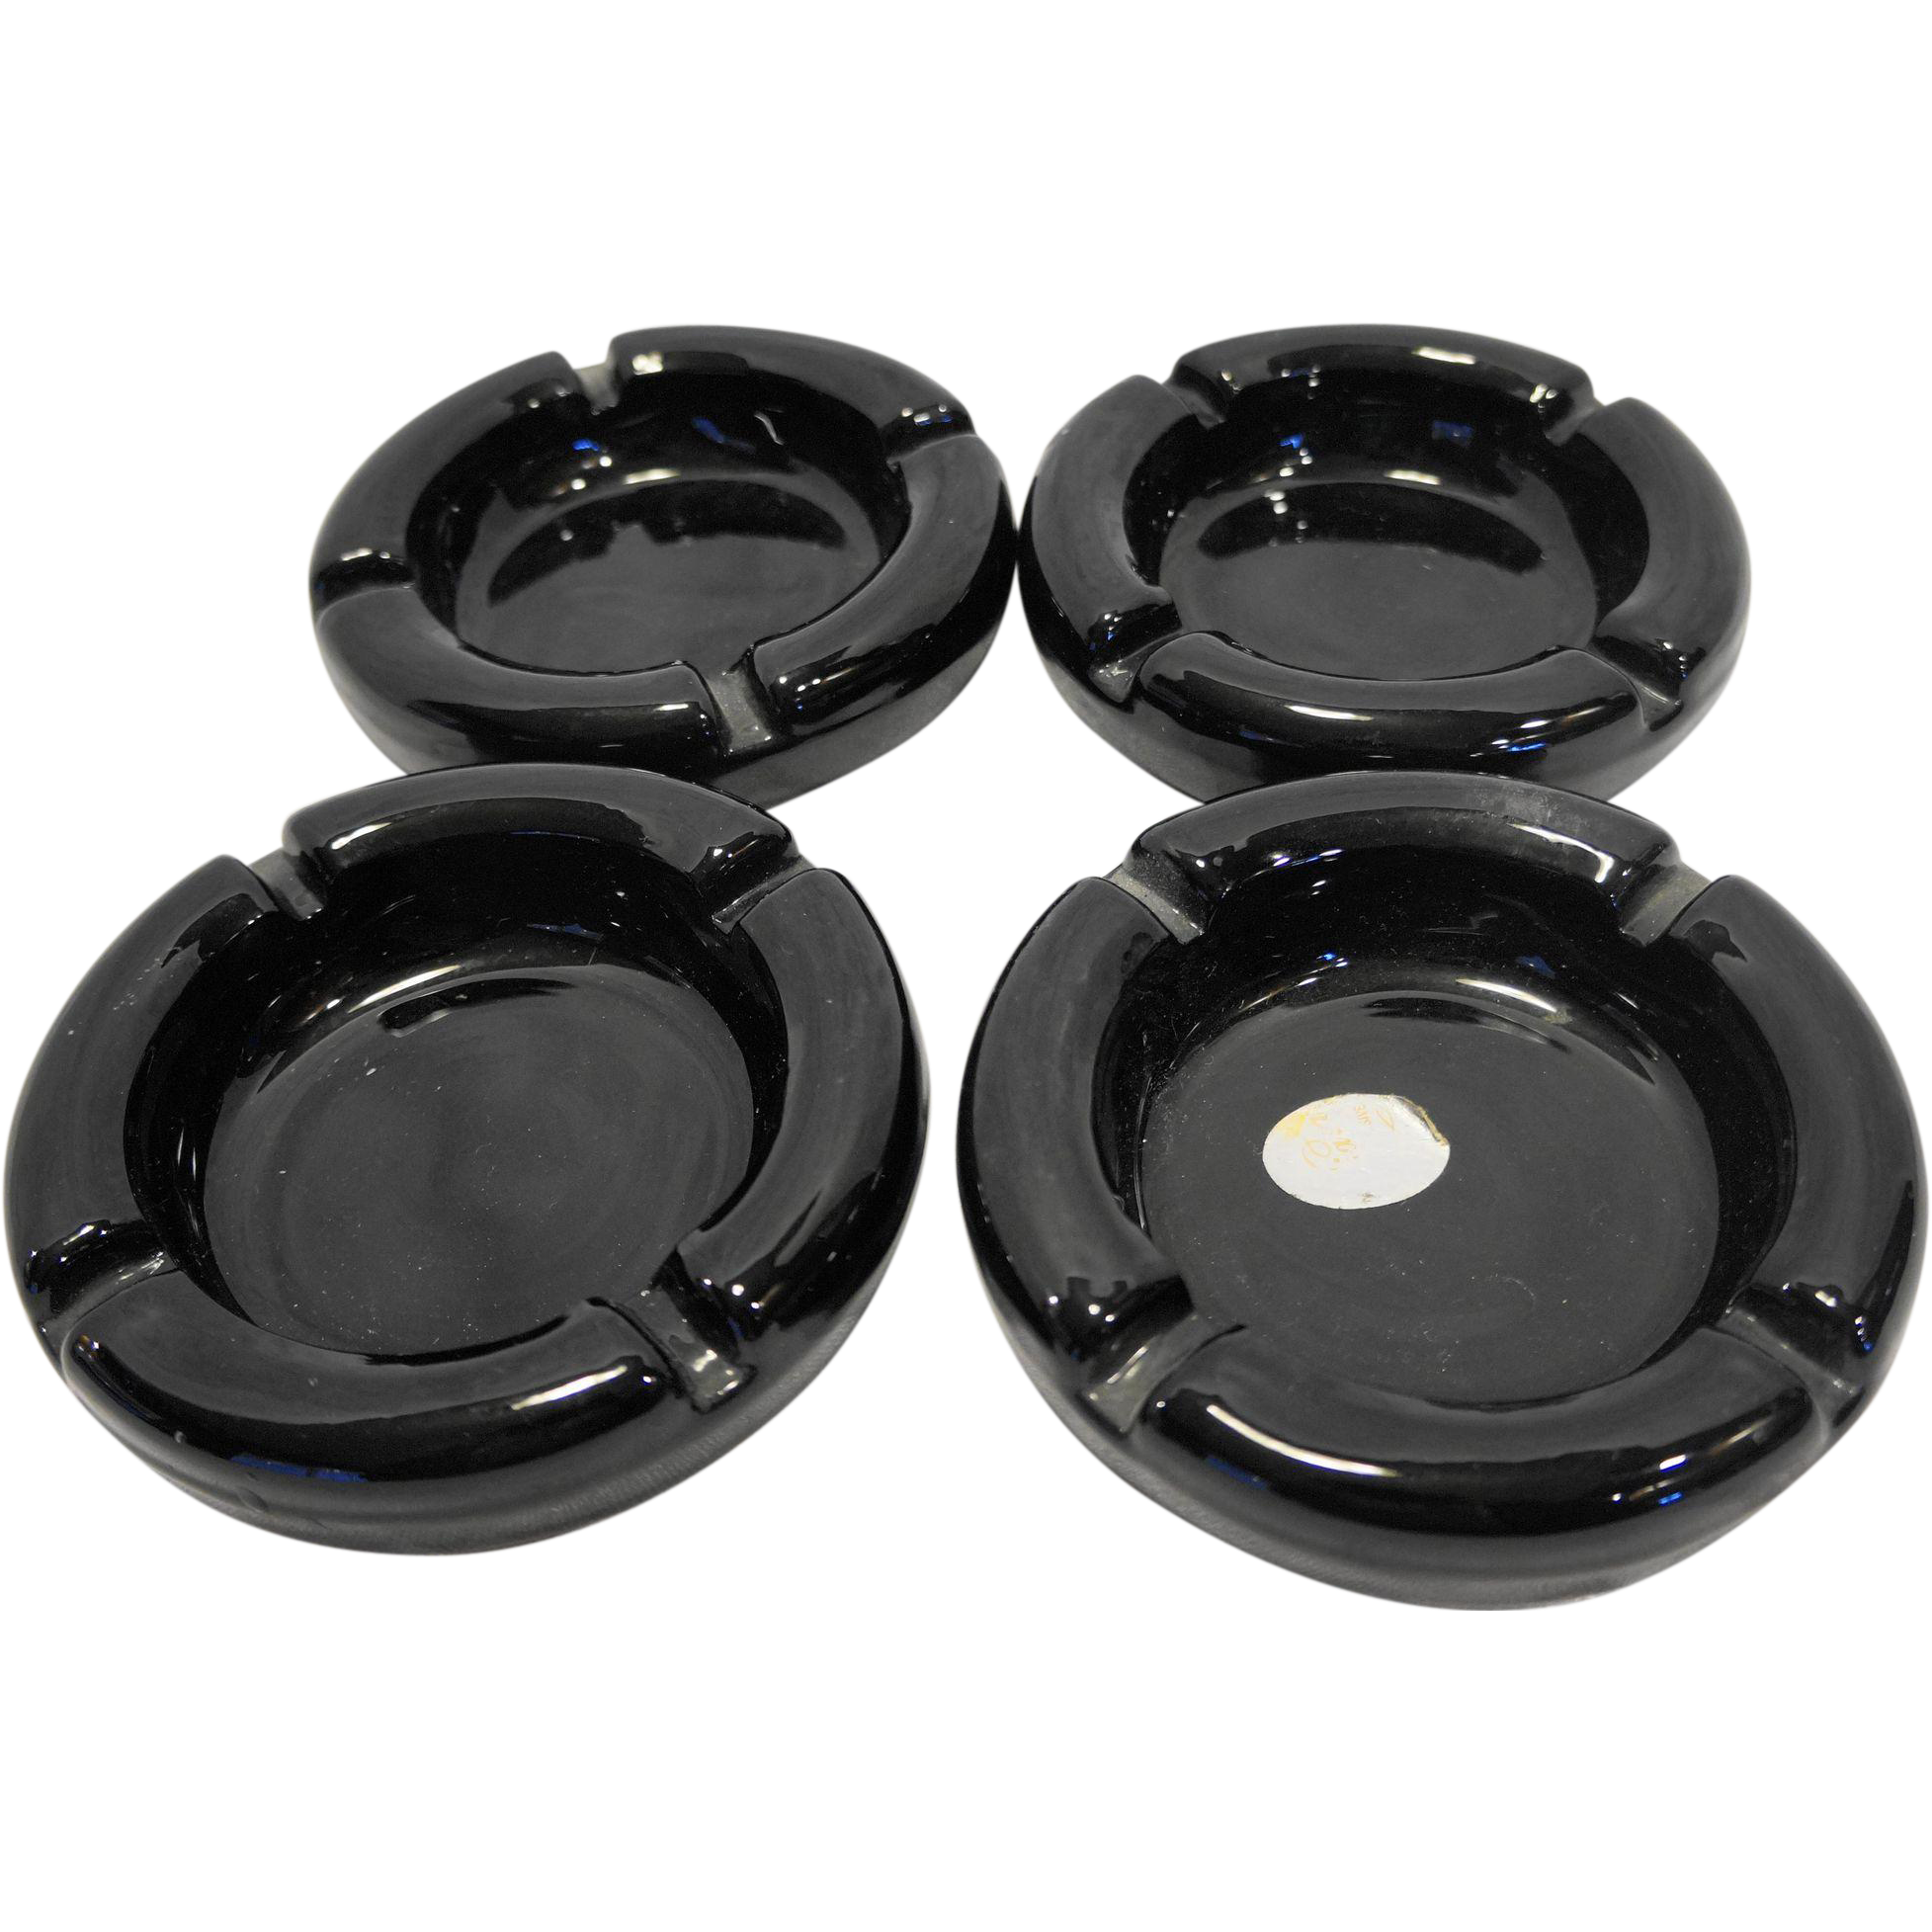 Tiara Exclusives Black Glass Round Ashtrays Set of 4